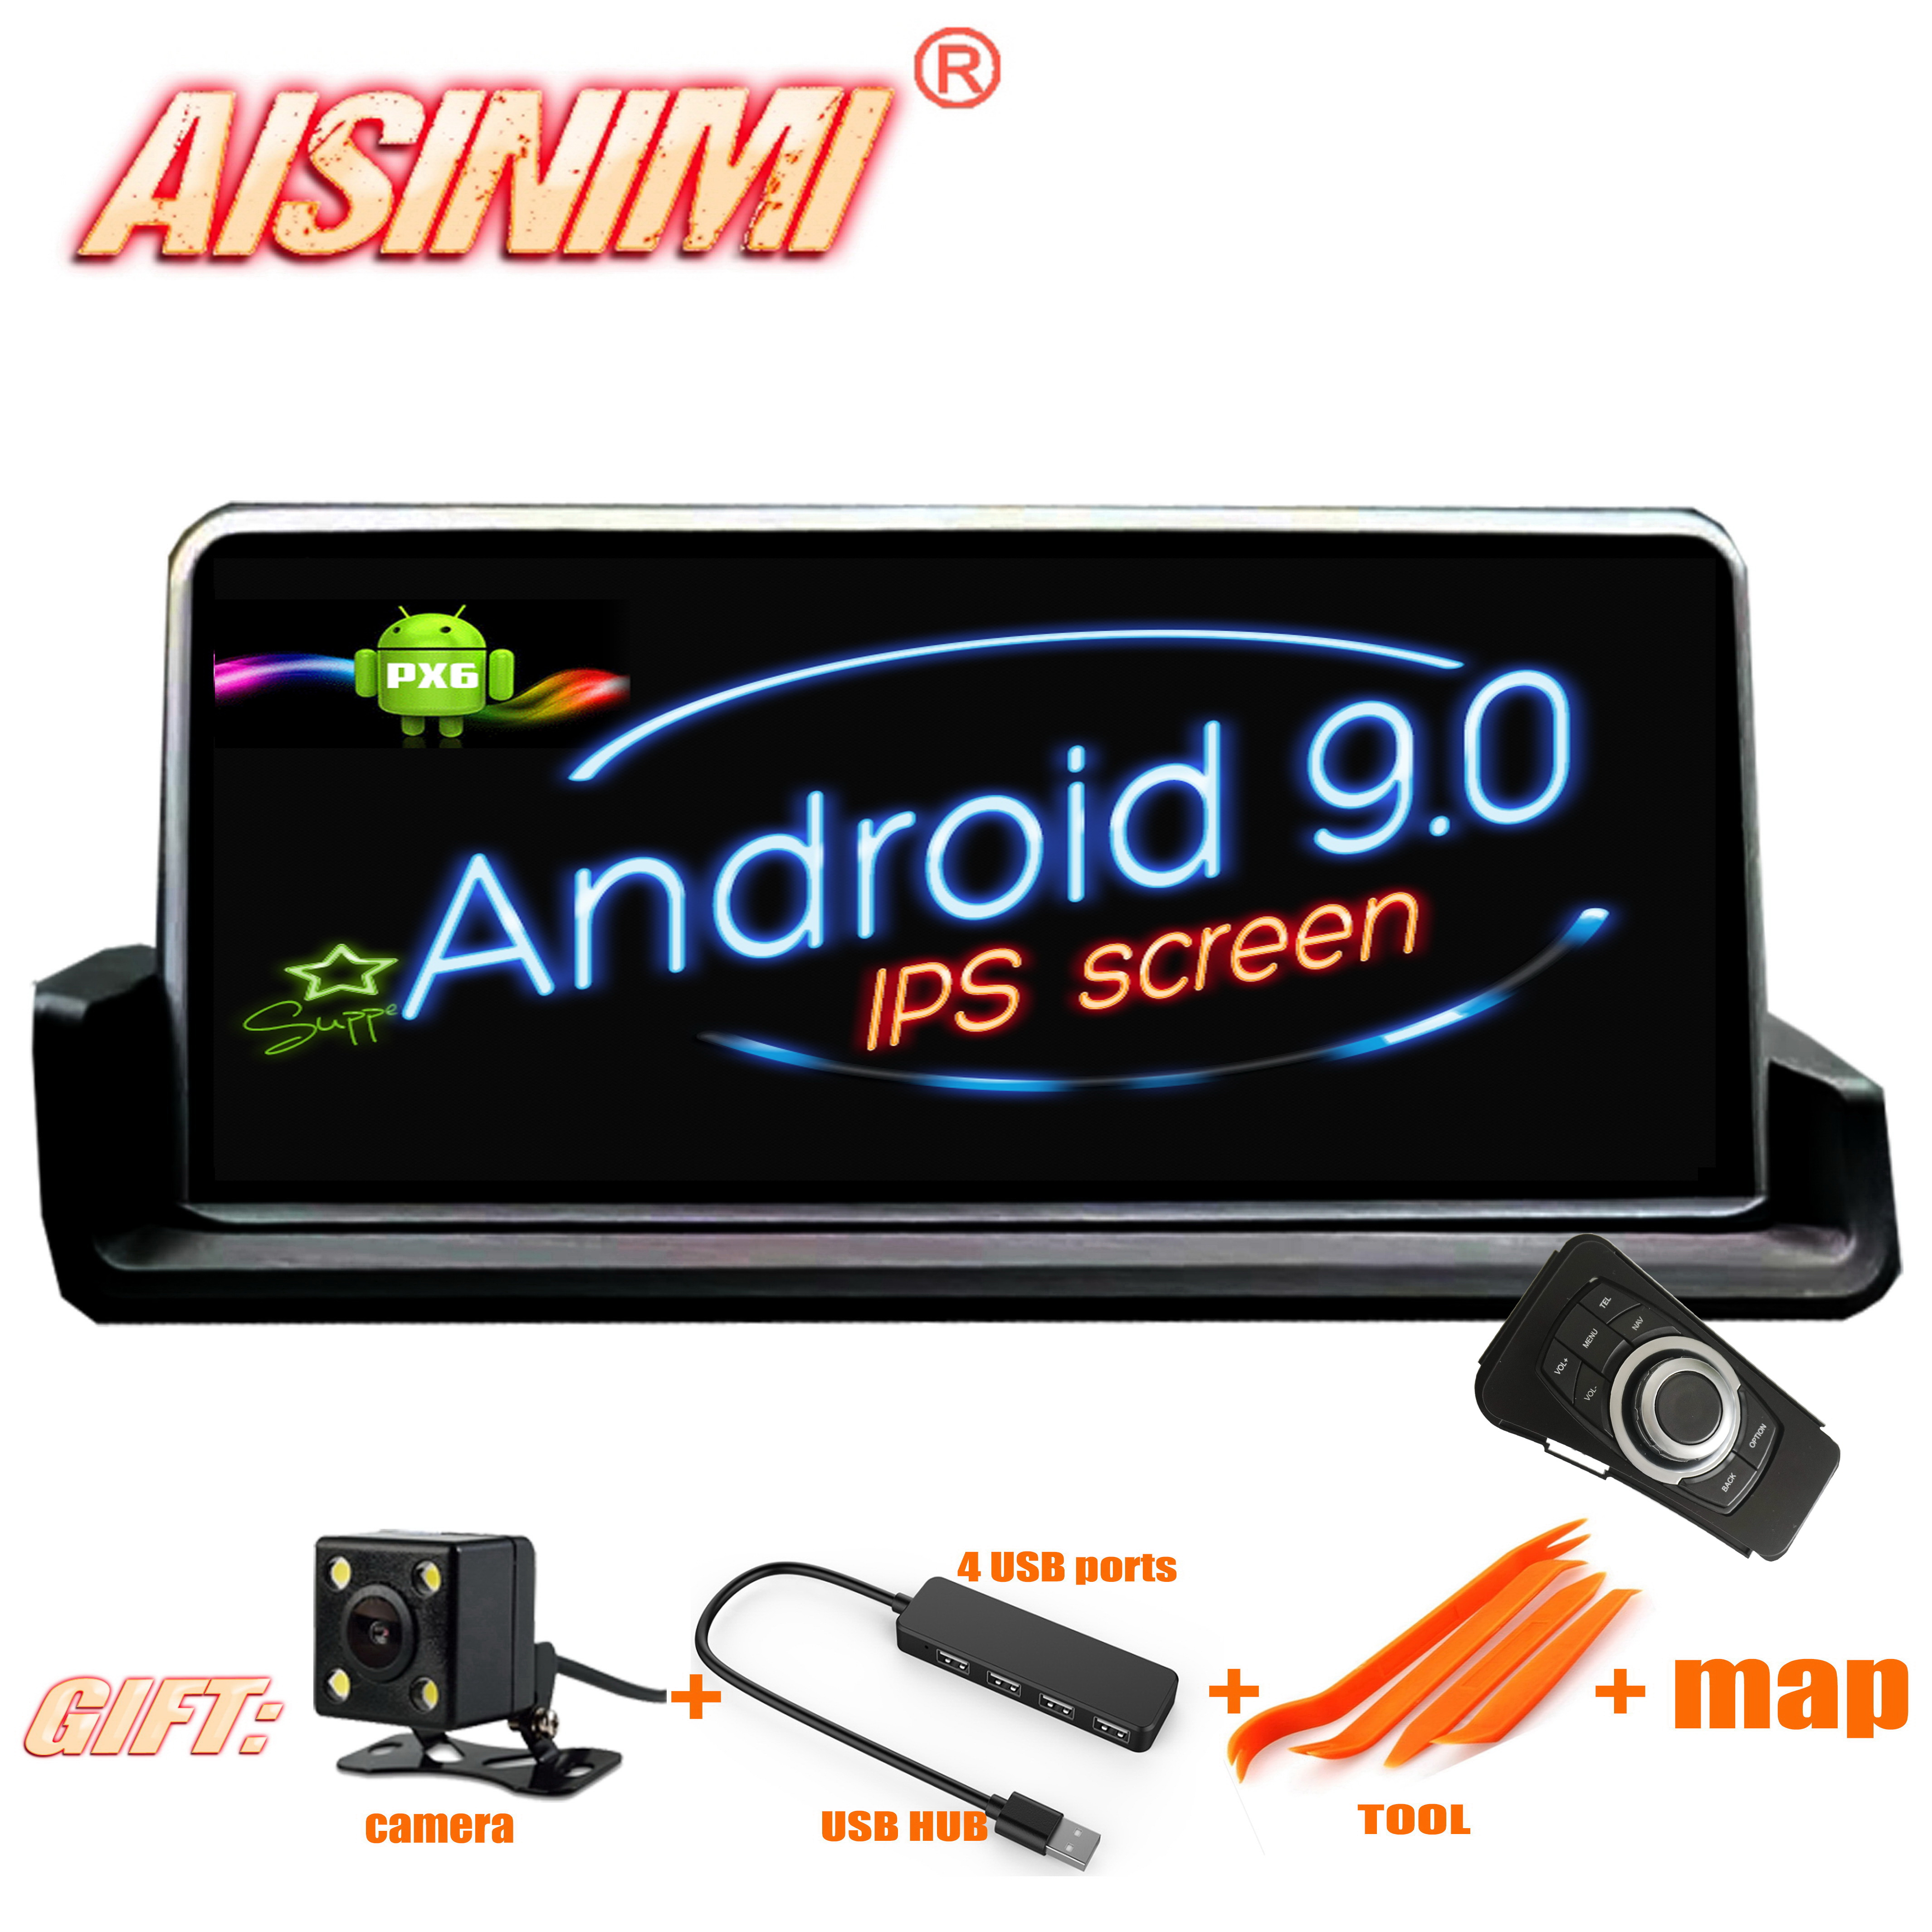 AISINIMI Android 9.0 PX6 Car Dvd Navi Player FOR BMW E90 (2006  2012) with iDrive left driver only audio gps stereo all in one-in Car Multimedia Player from Automobiles & Motorcycles    1